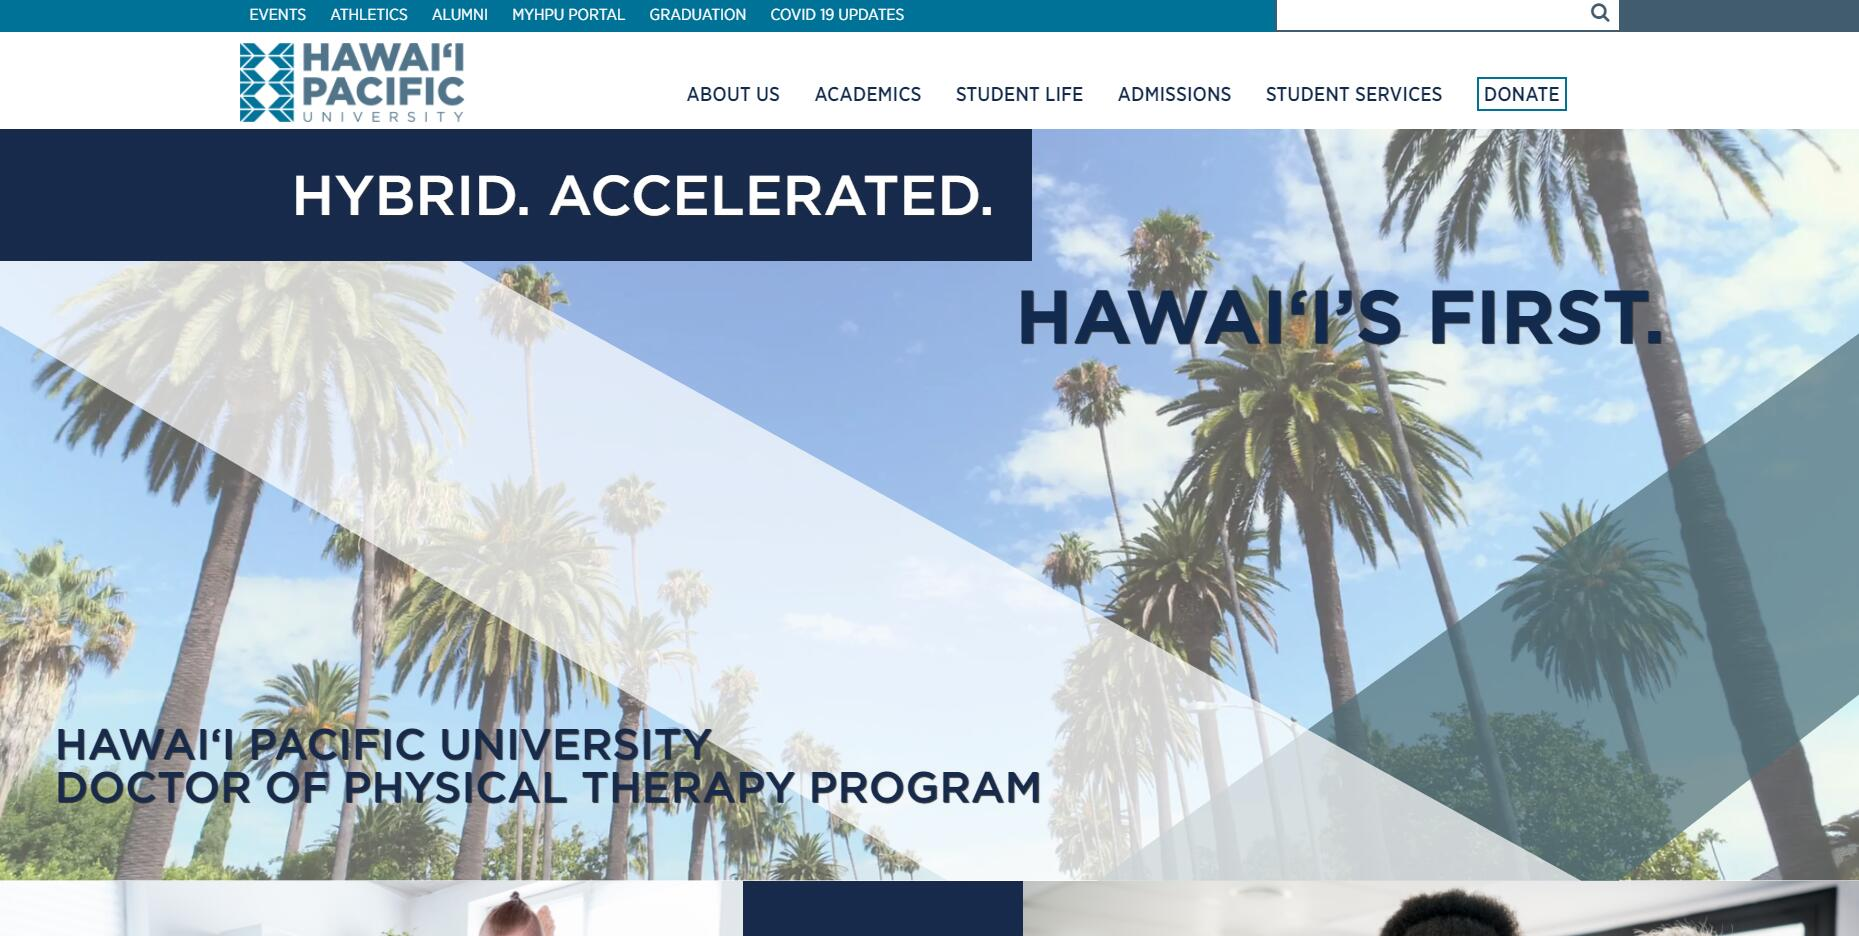 Doctor of Physical Therapy - Hawaii Pacific University